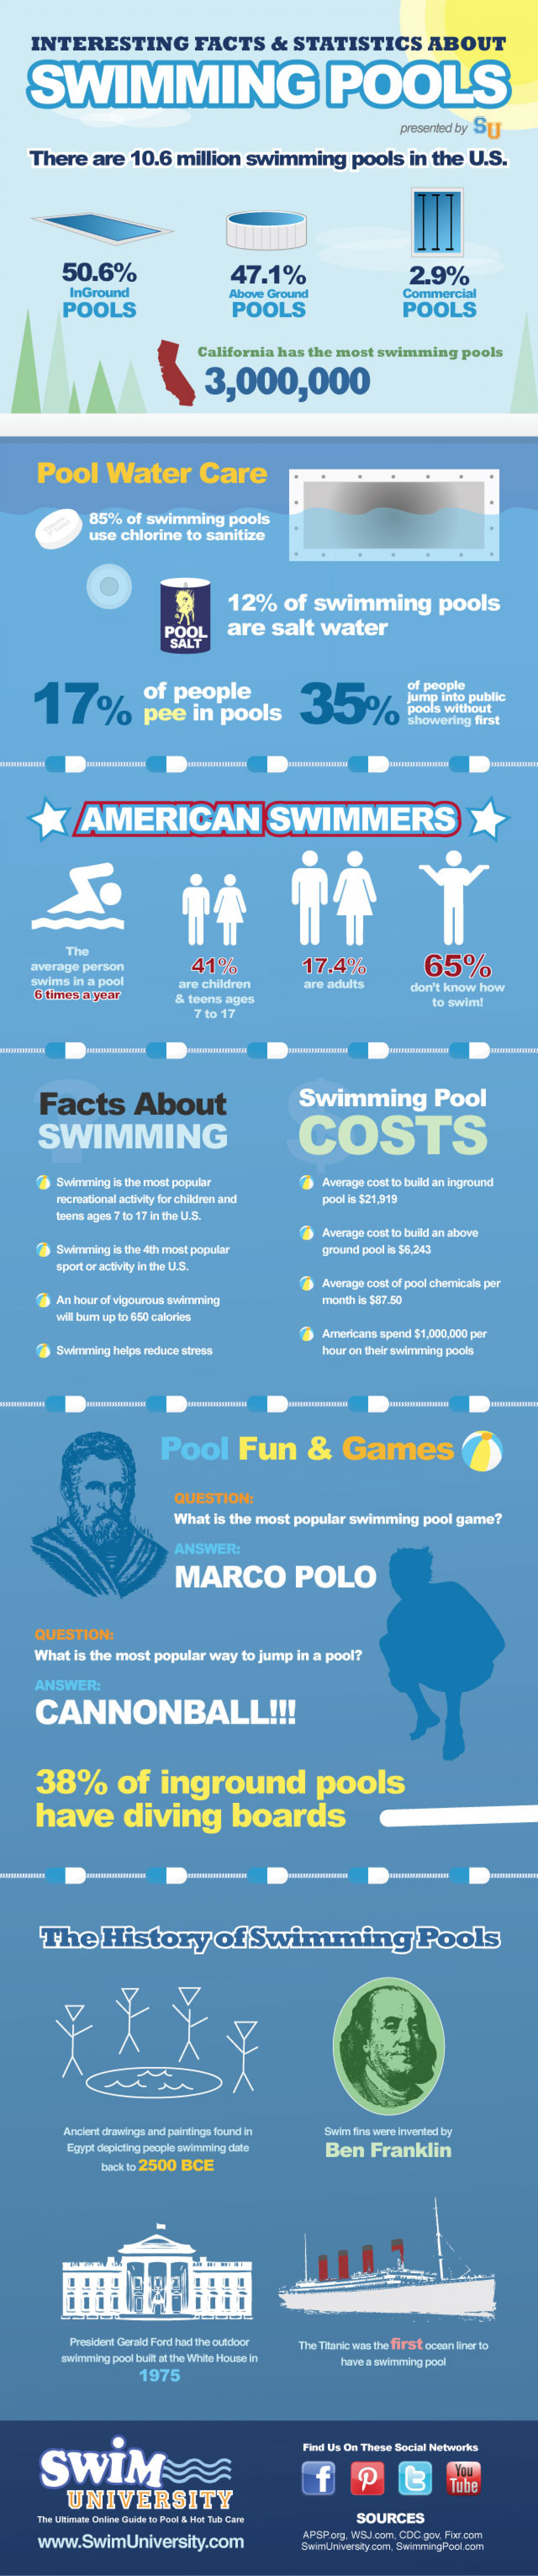 Interesting Facts Statistics About Swimming Pools Infographic